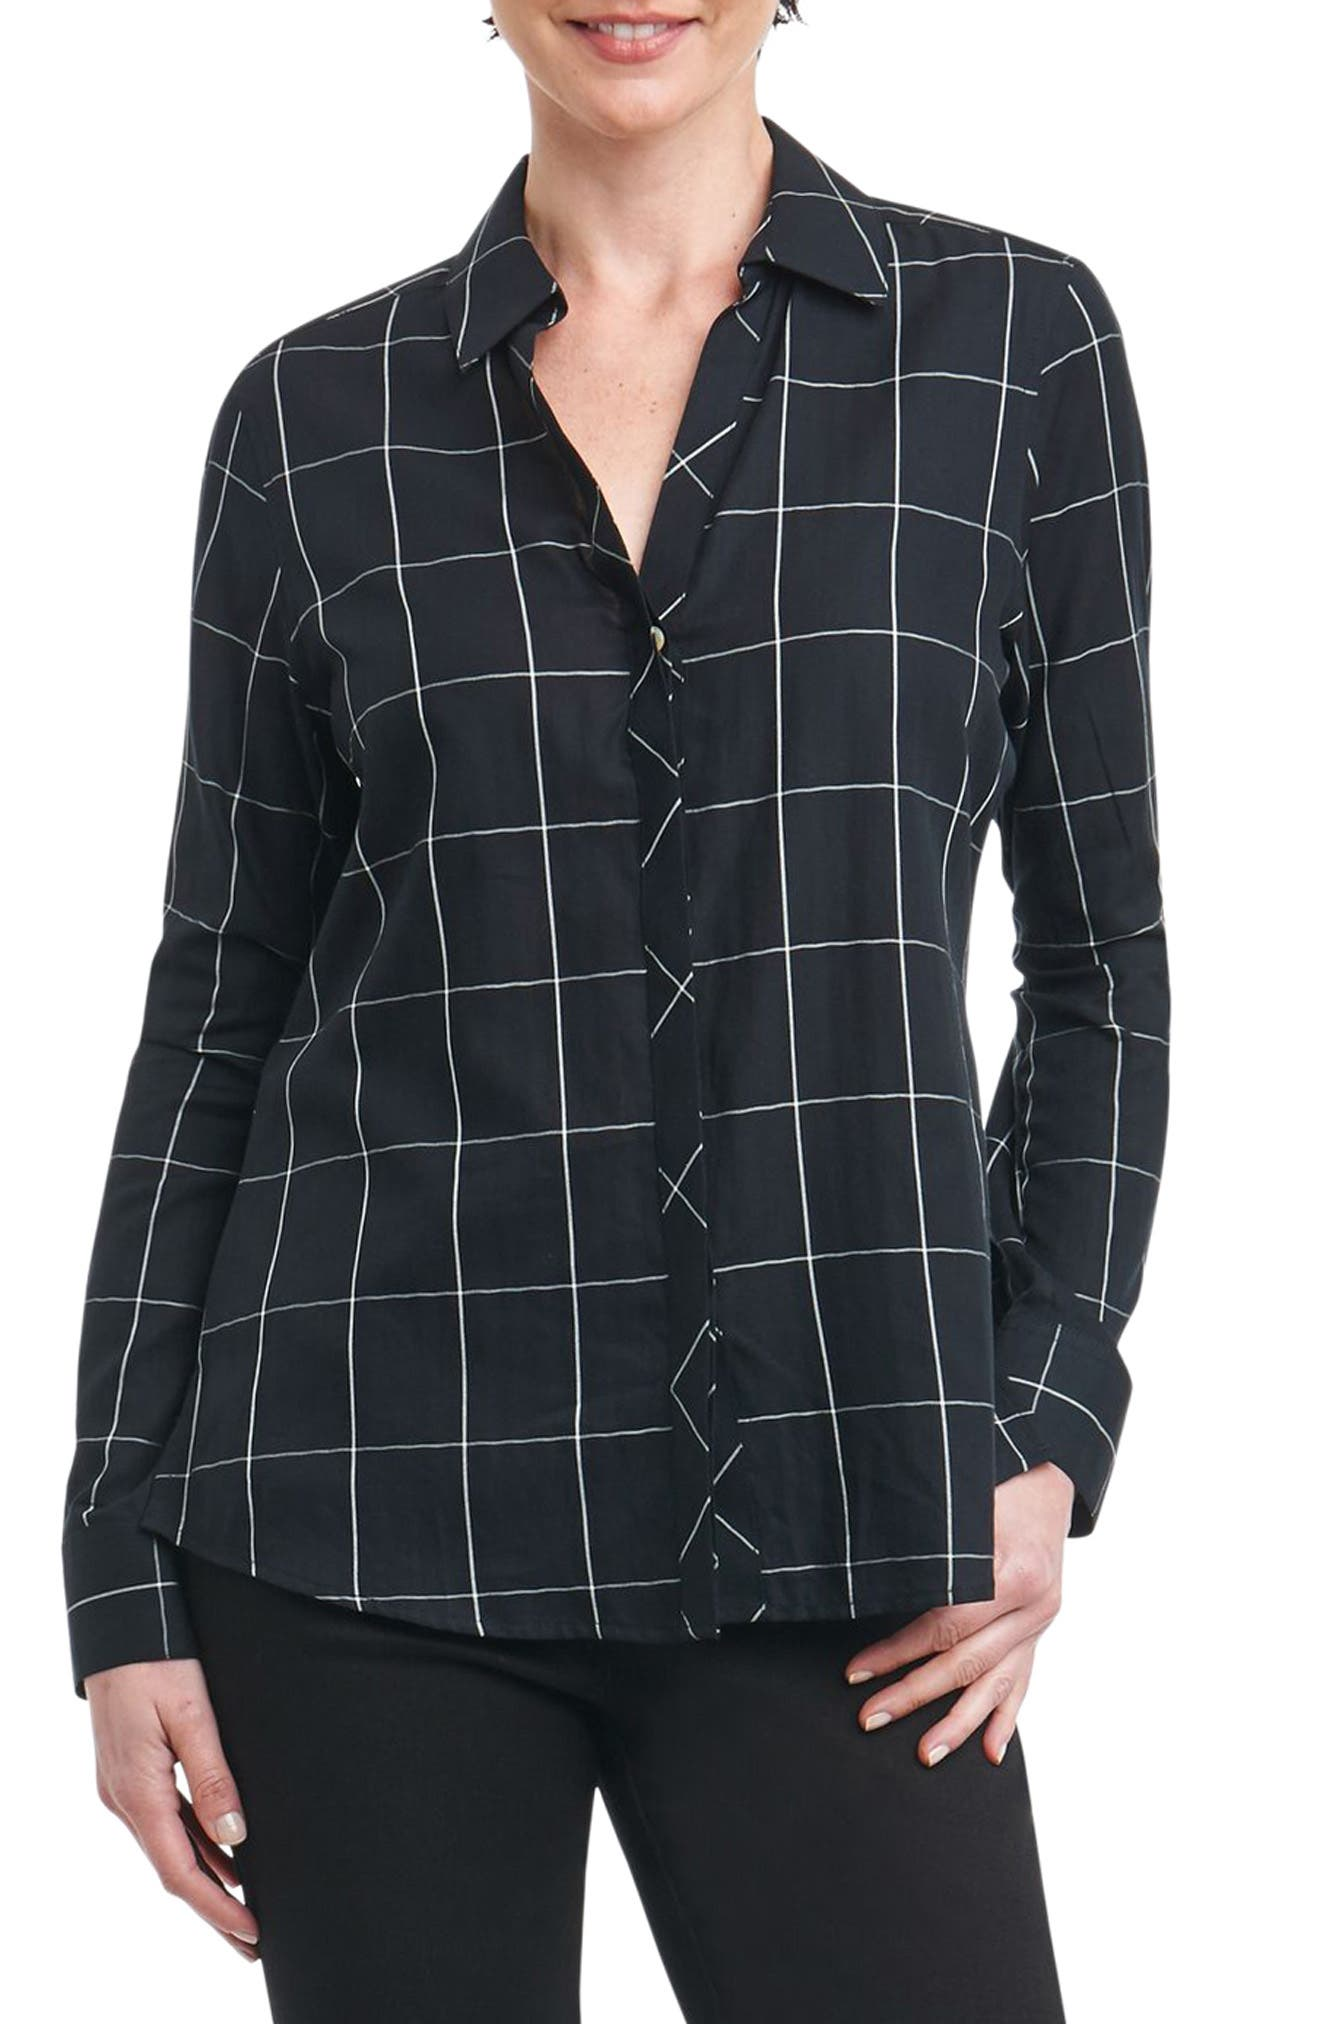 Alternate Image 1 Selected - Foxcroft Nicole Windowpane Print Shirt (Regular & Petite)